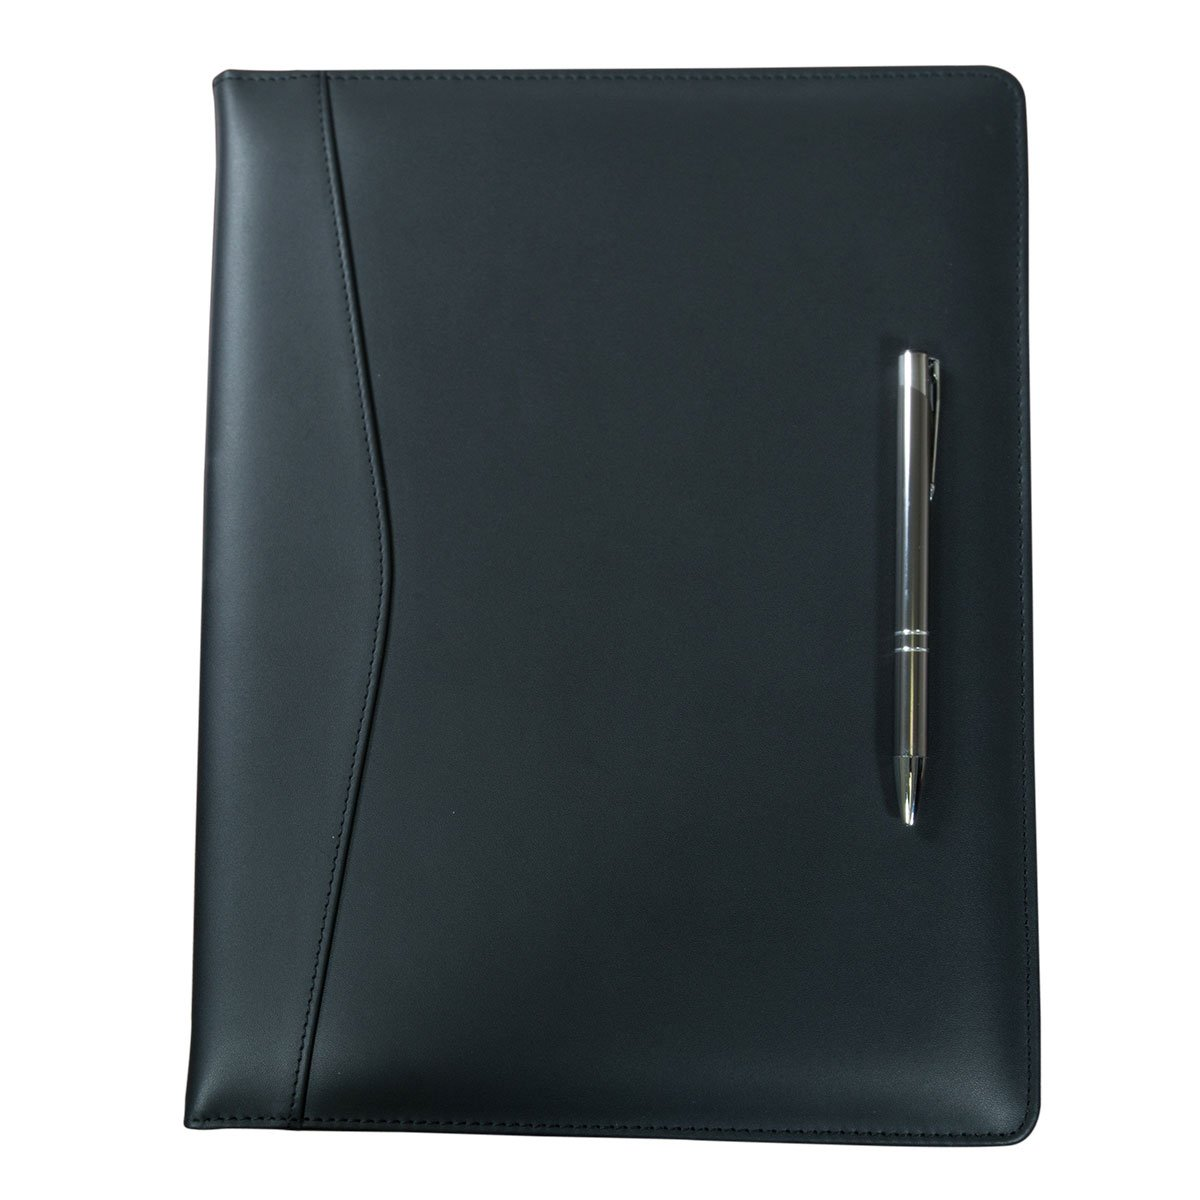 Dacasso Leather Standard Portfolio, Black (E1001) by Dacasso